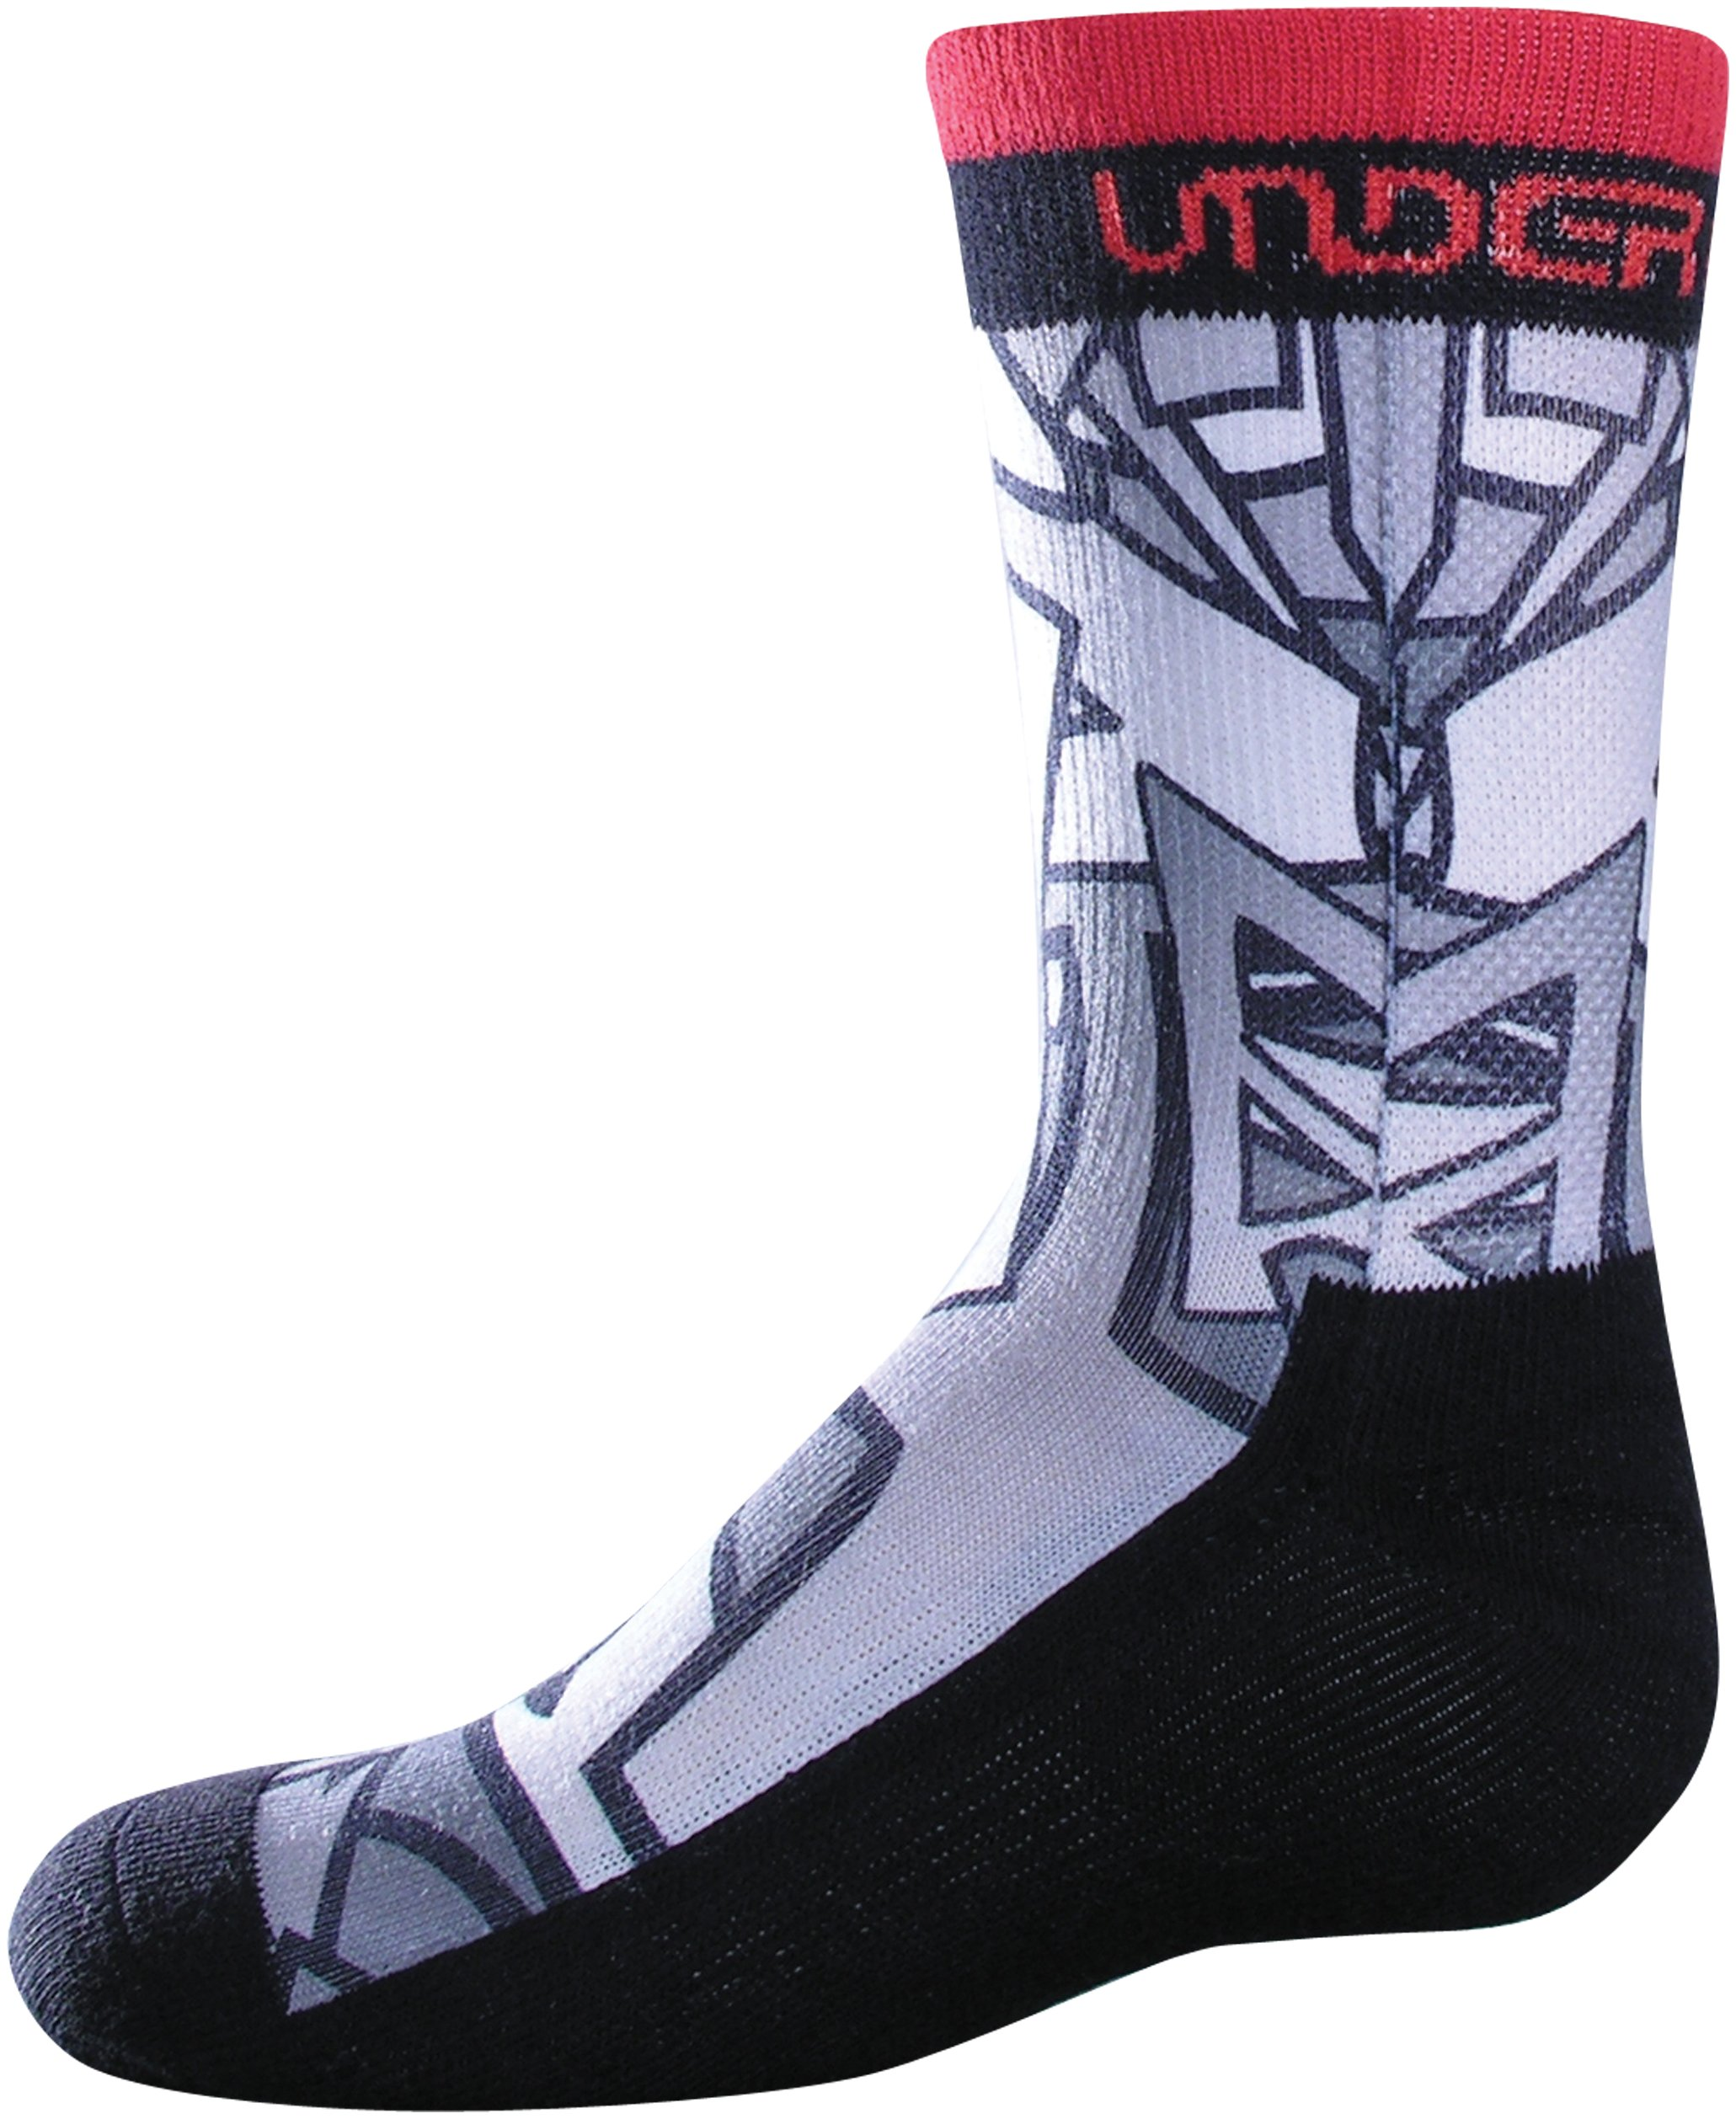 Boys' UA Pixaprint Sublimated Crew Socks, Black